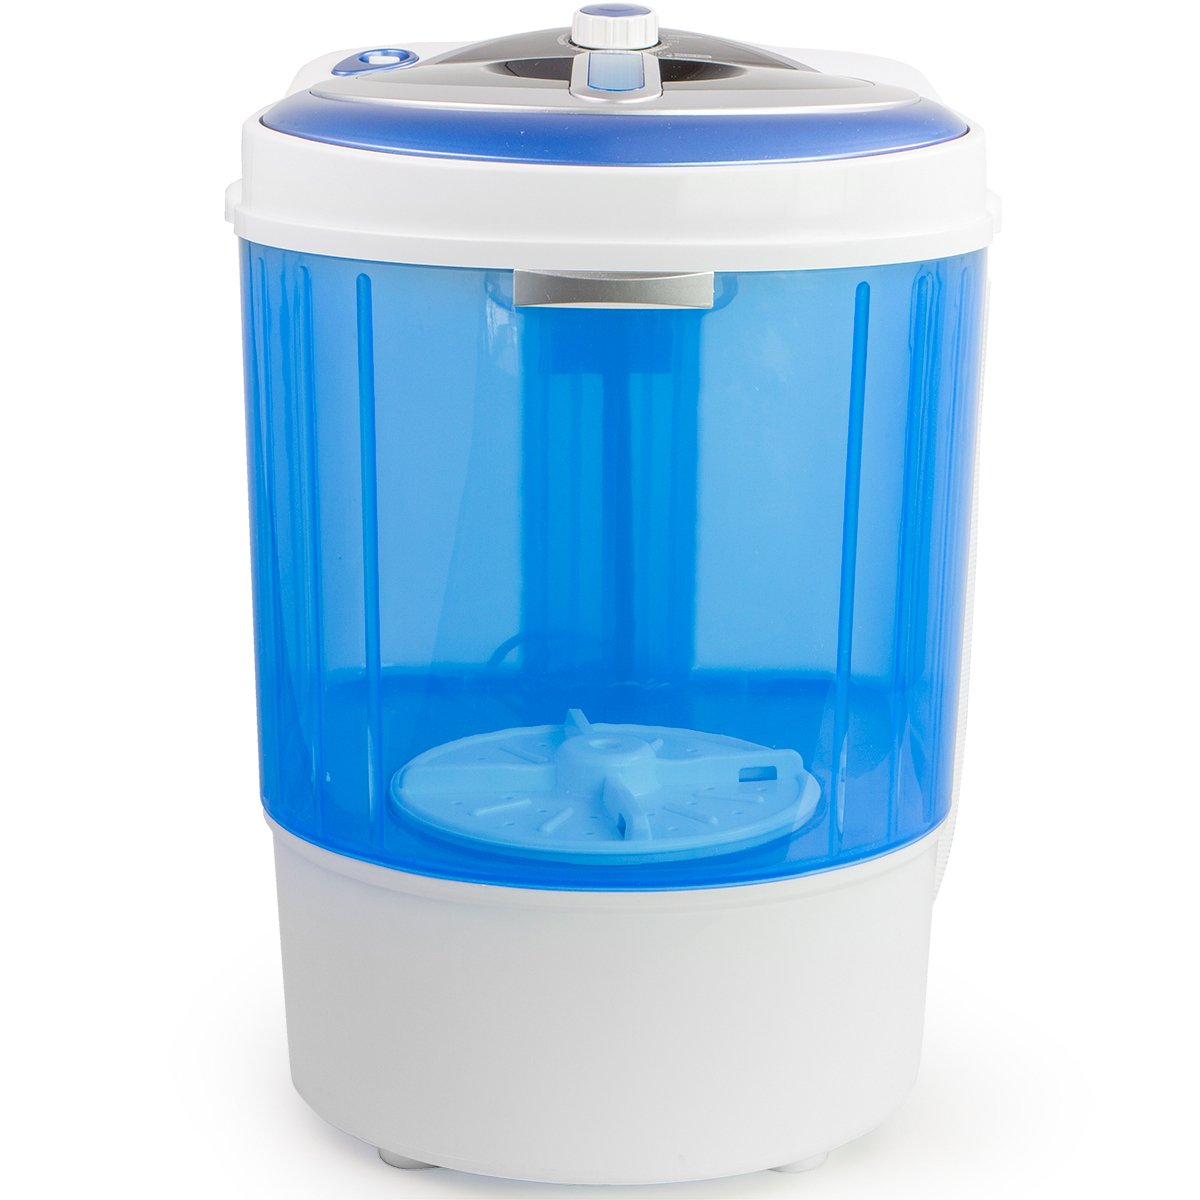 Ensue Portable Single Tub Electric Compact Mini Washer Machine, 8.6 lbs 99808